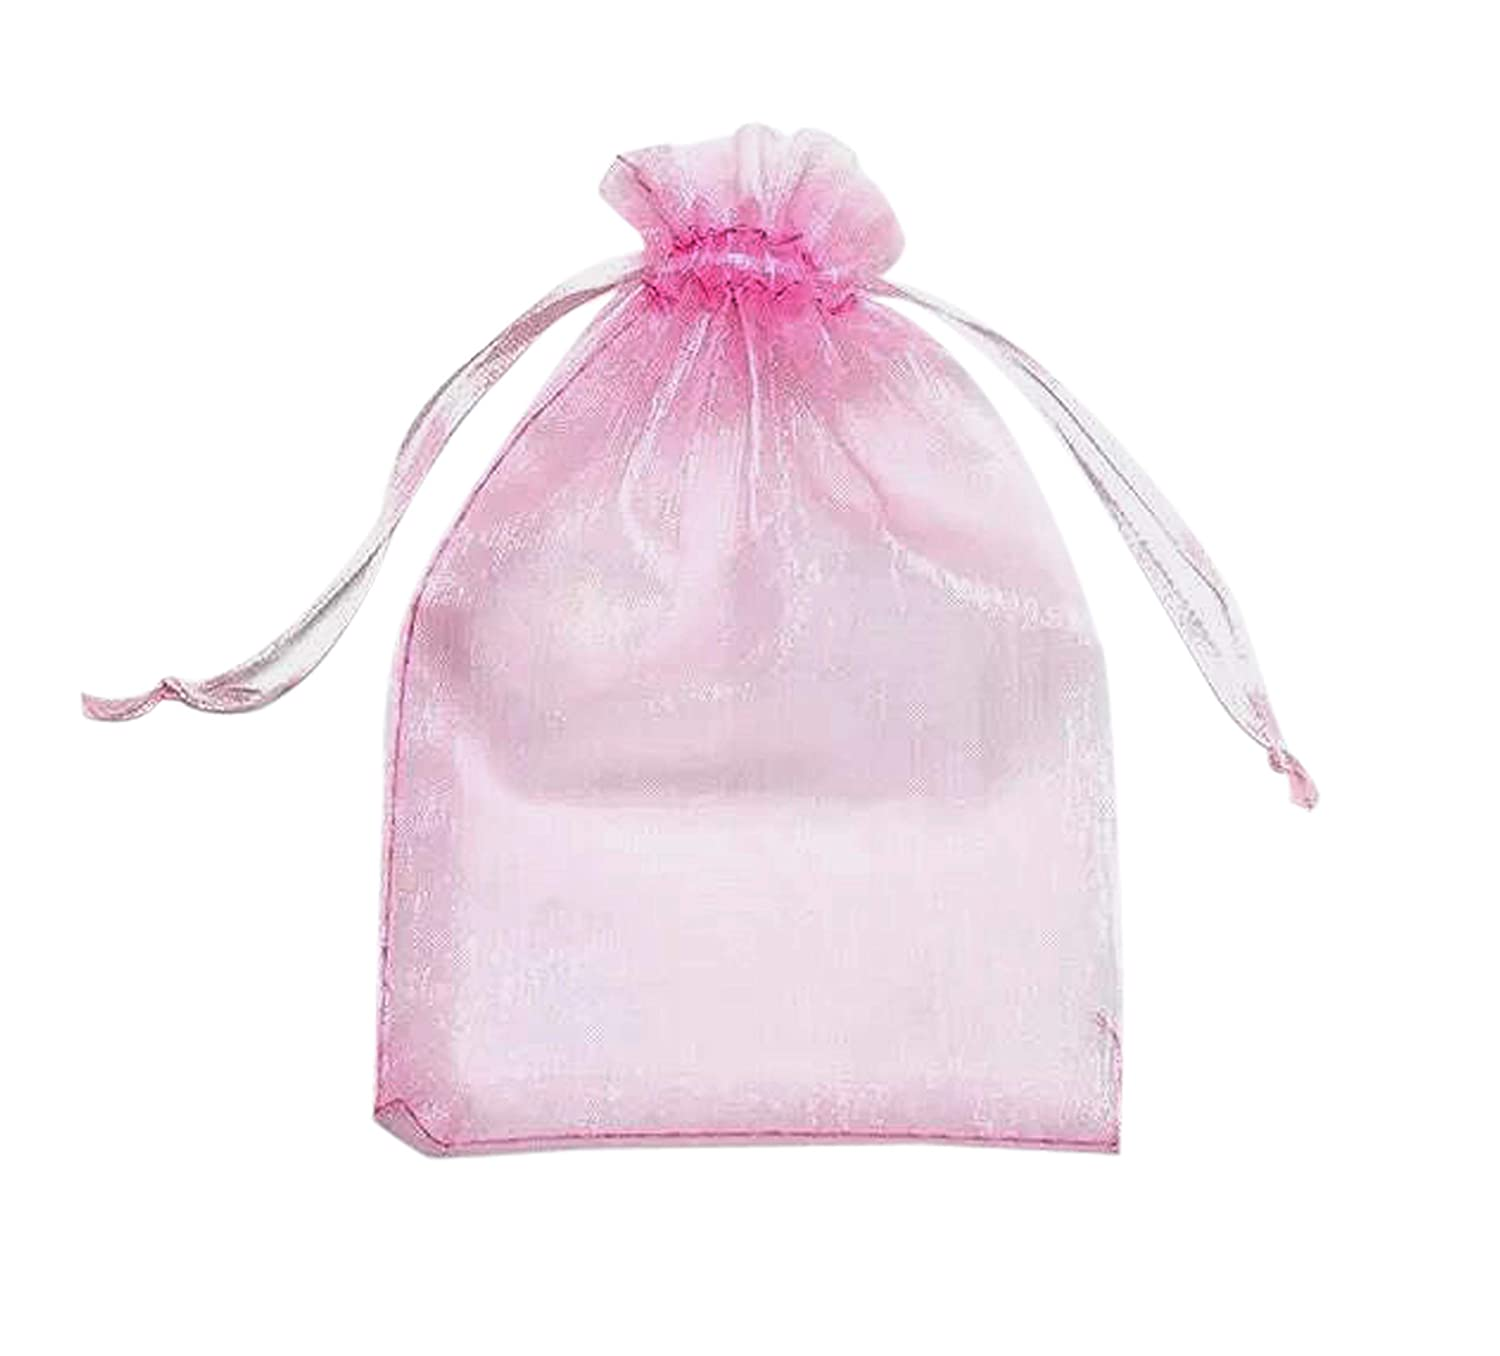 Pack of 100 Lavender Organza Gift Bags